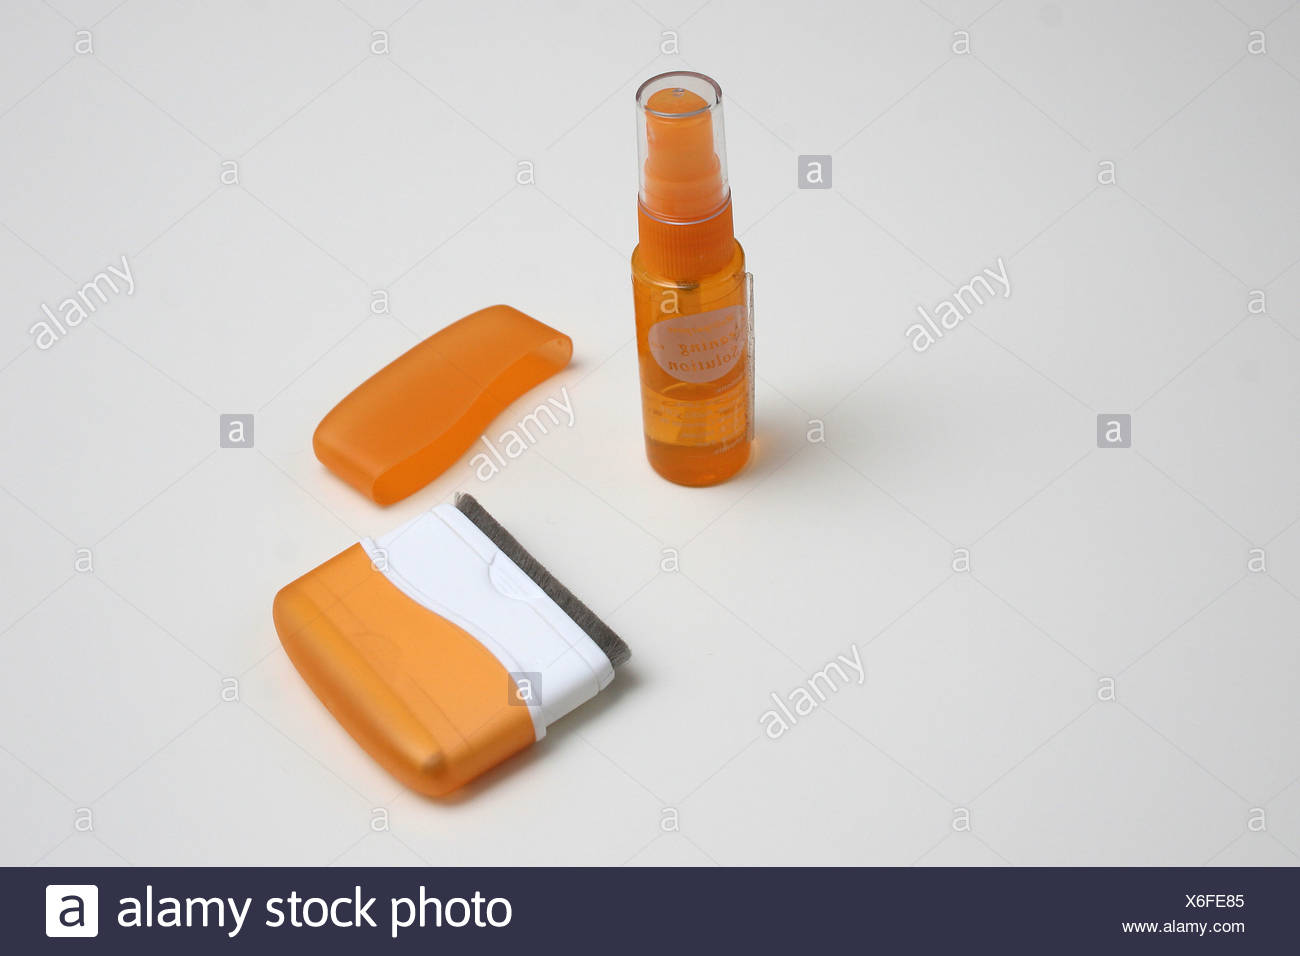 Computer screen cleaning solution and tools on white background - Stock Image